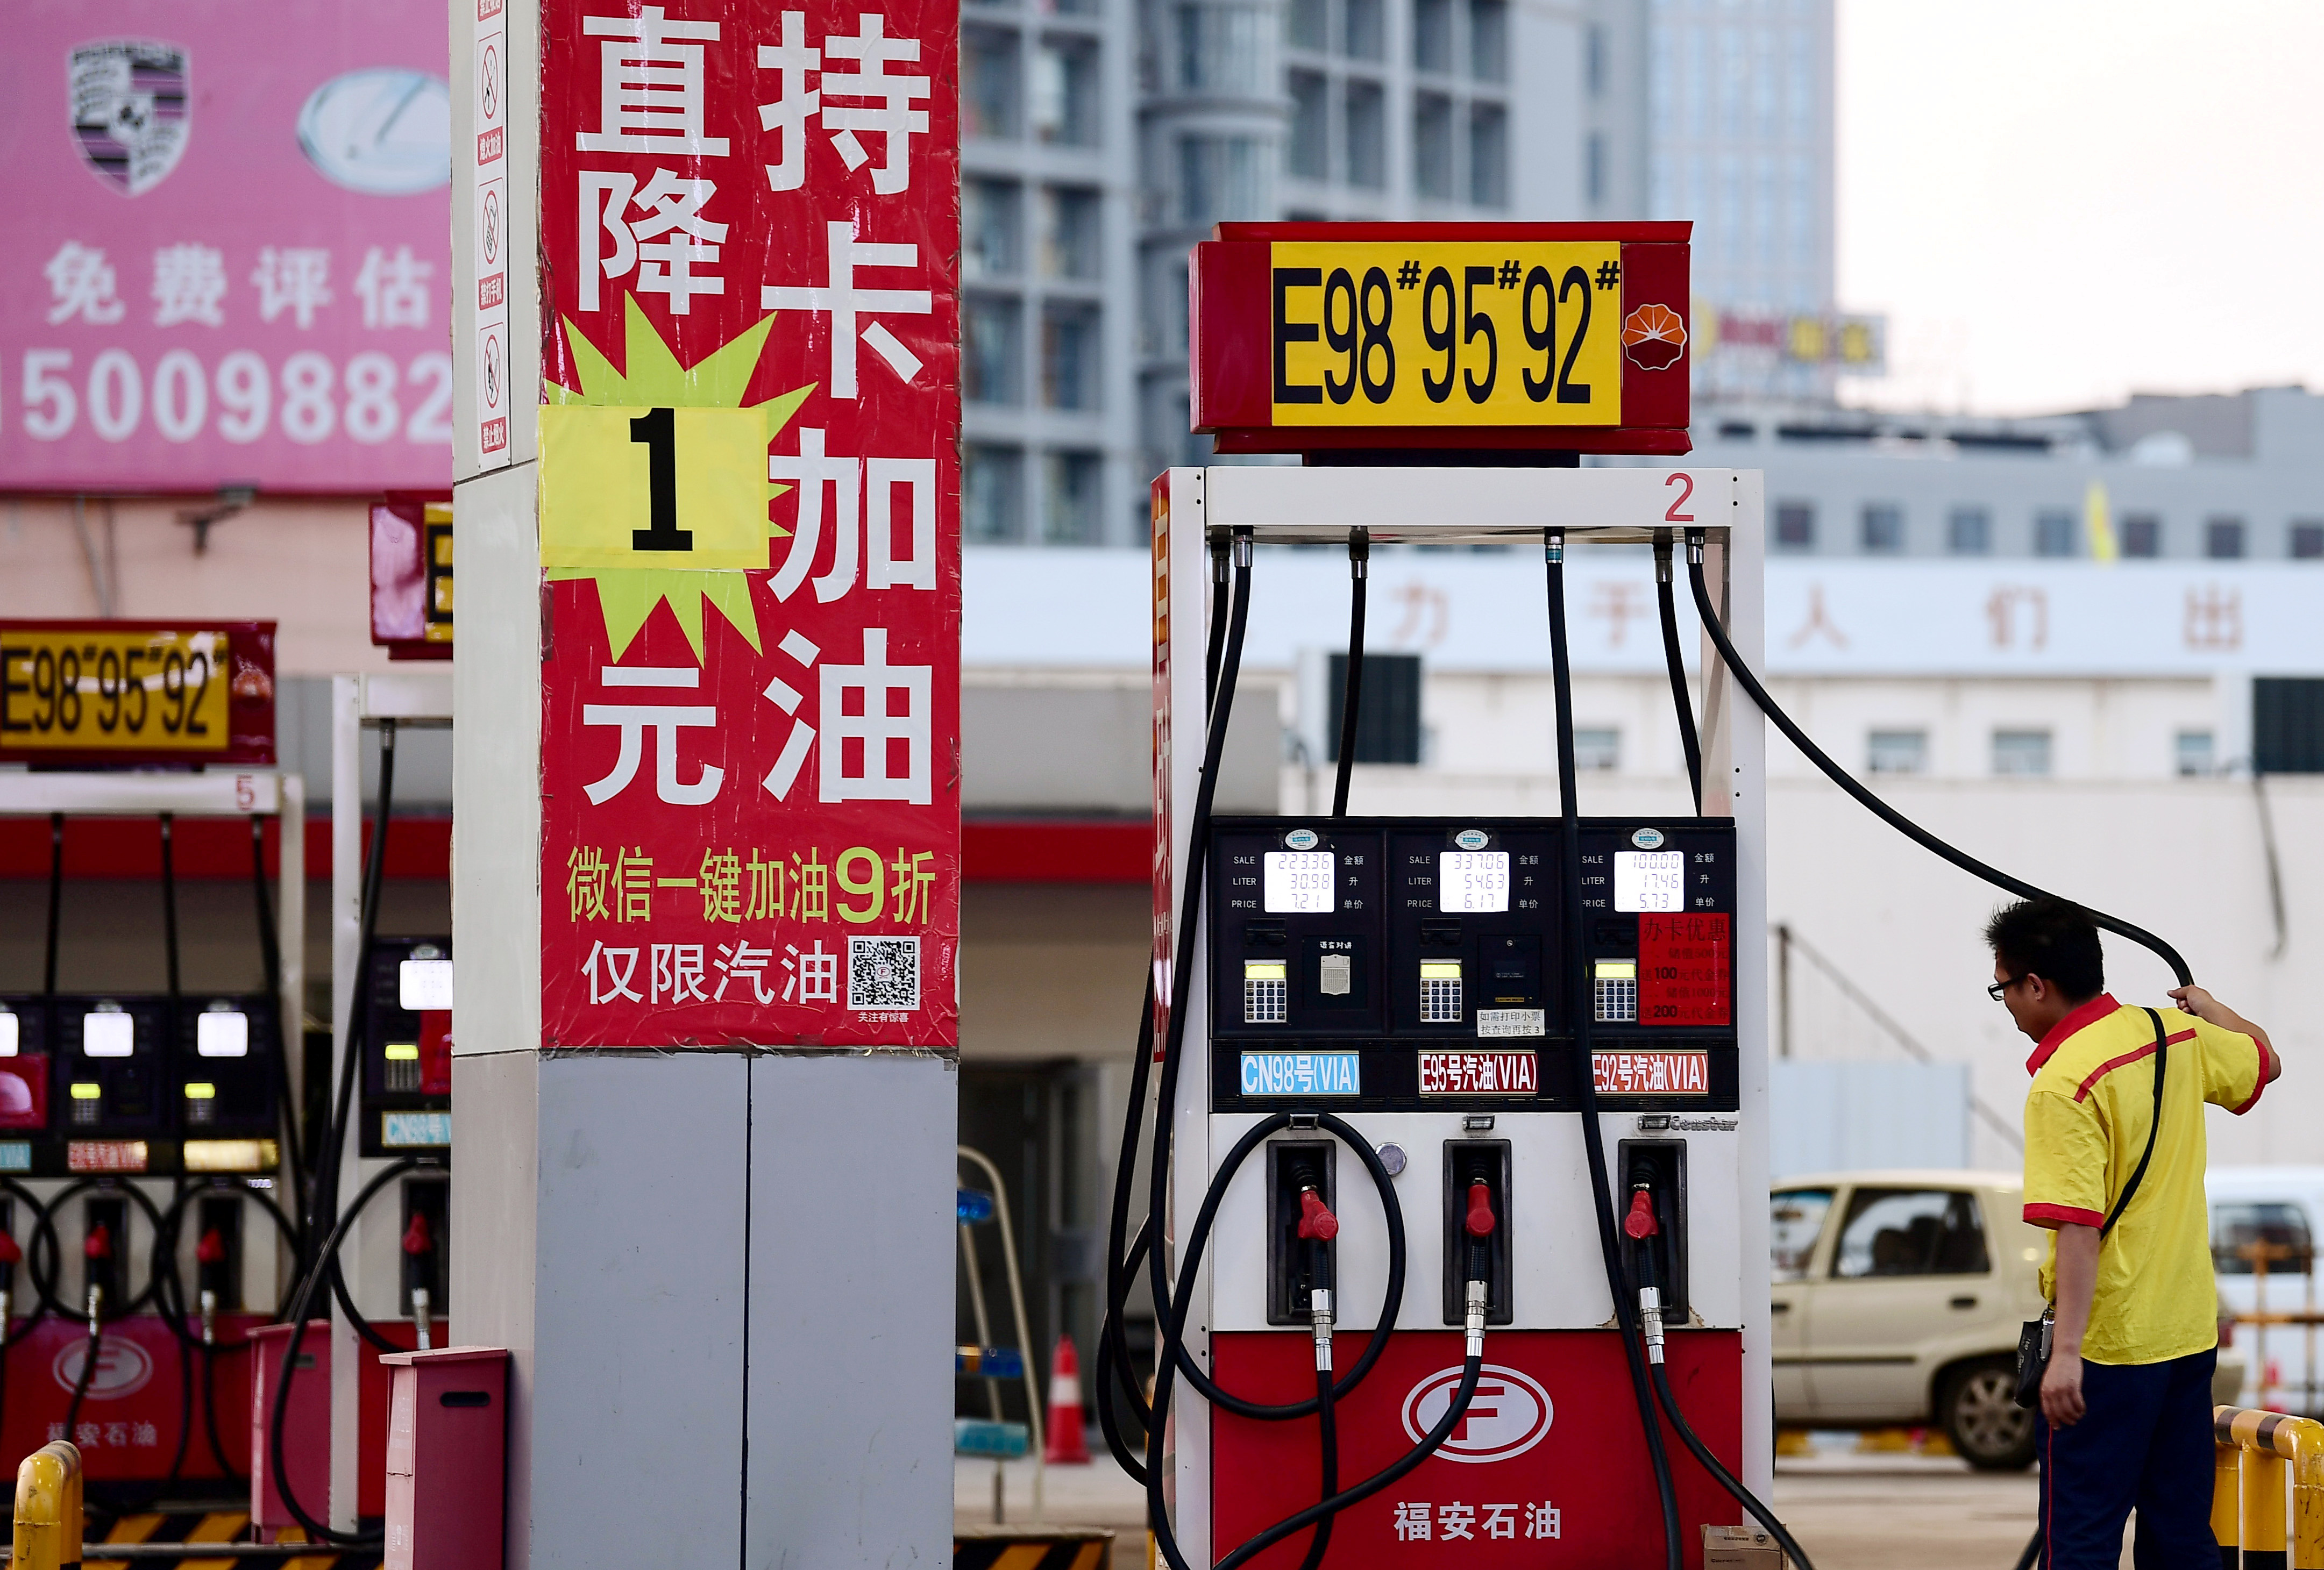 A pump attendant is seen next to a discount advertisement for gasolines at a Petrochina petrol station in Shenyang, Liaoning province, China June 24, 2019.  REUTERS/Stringer